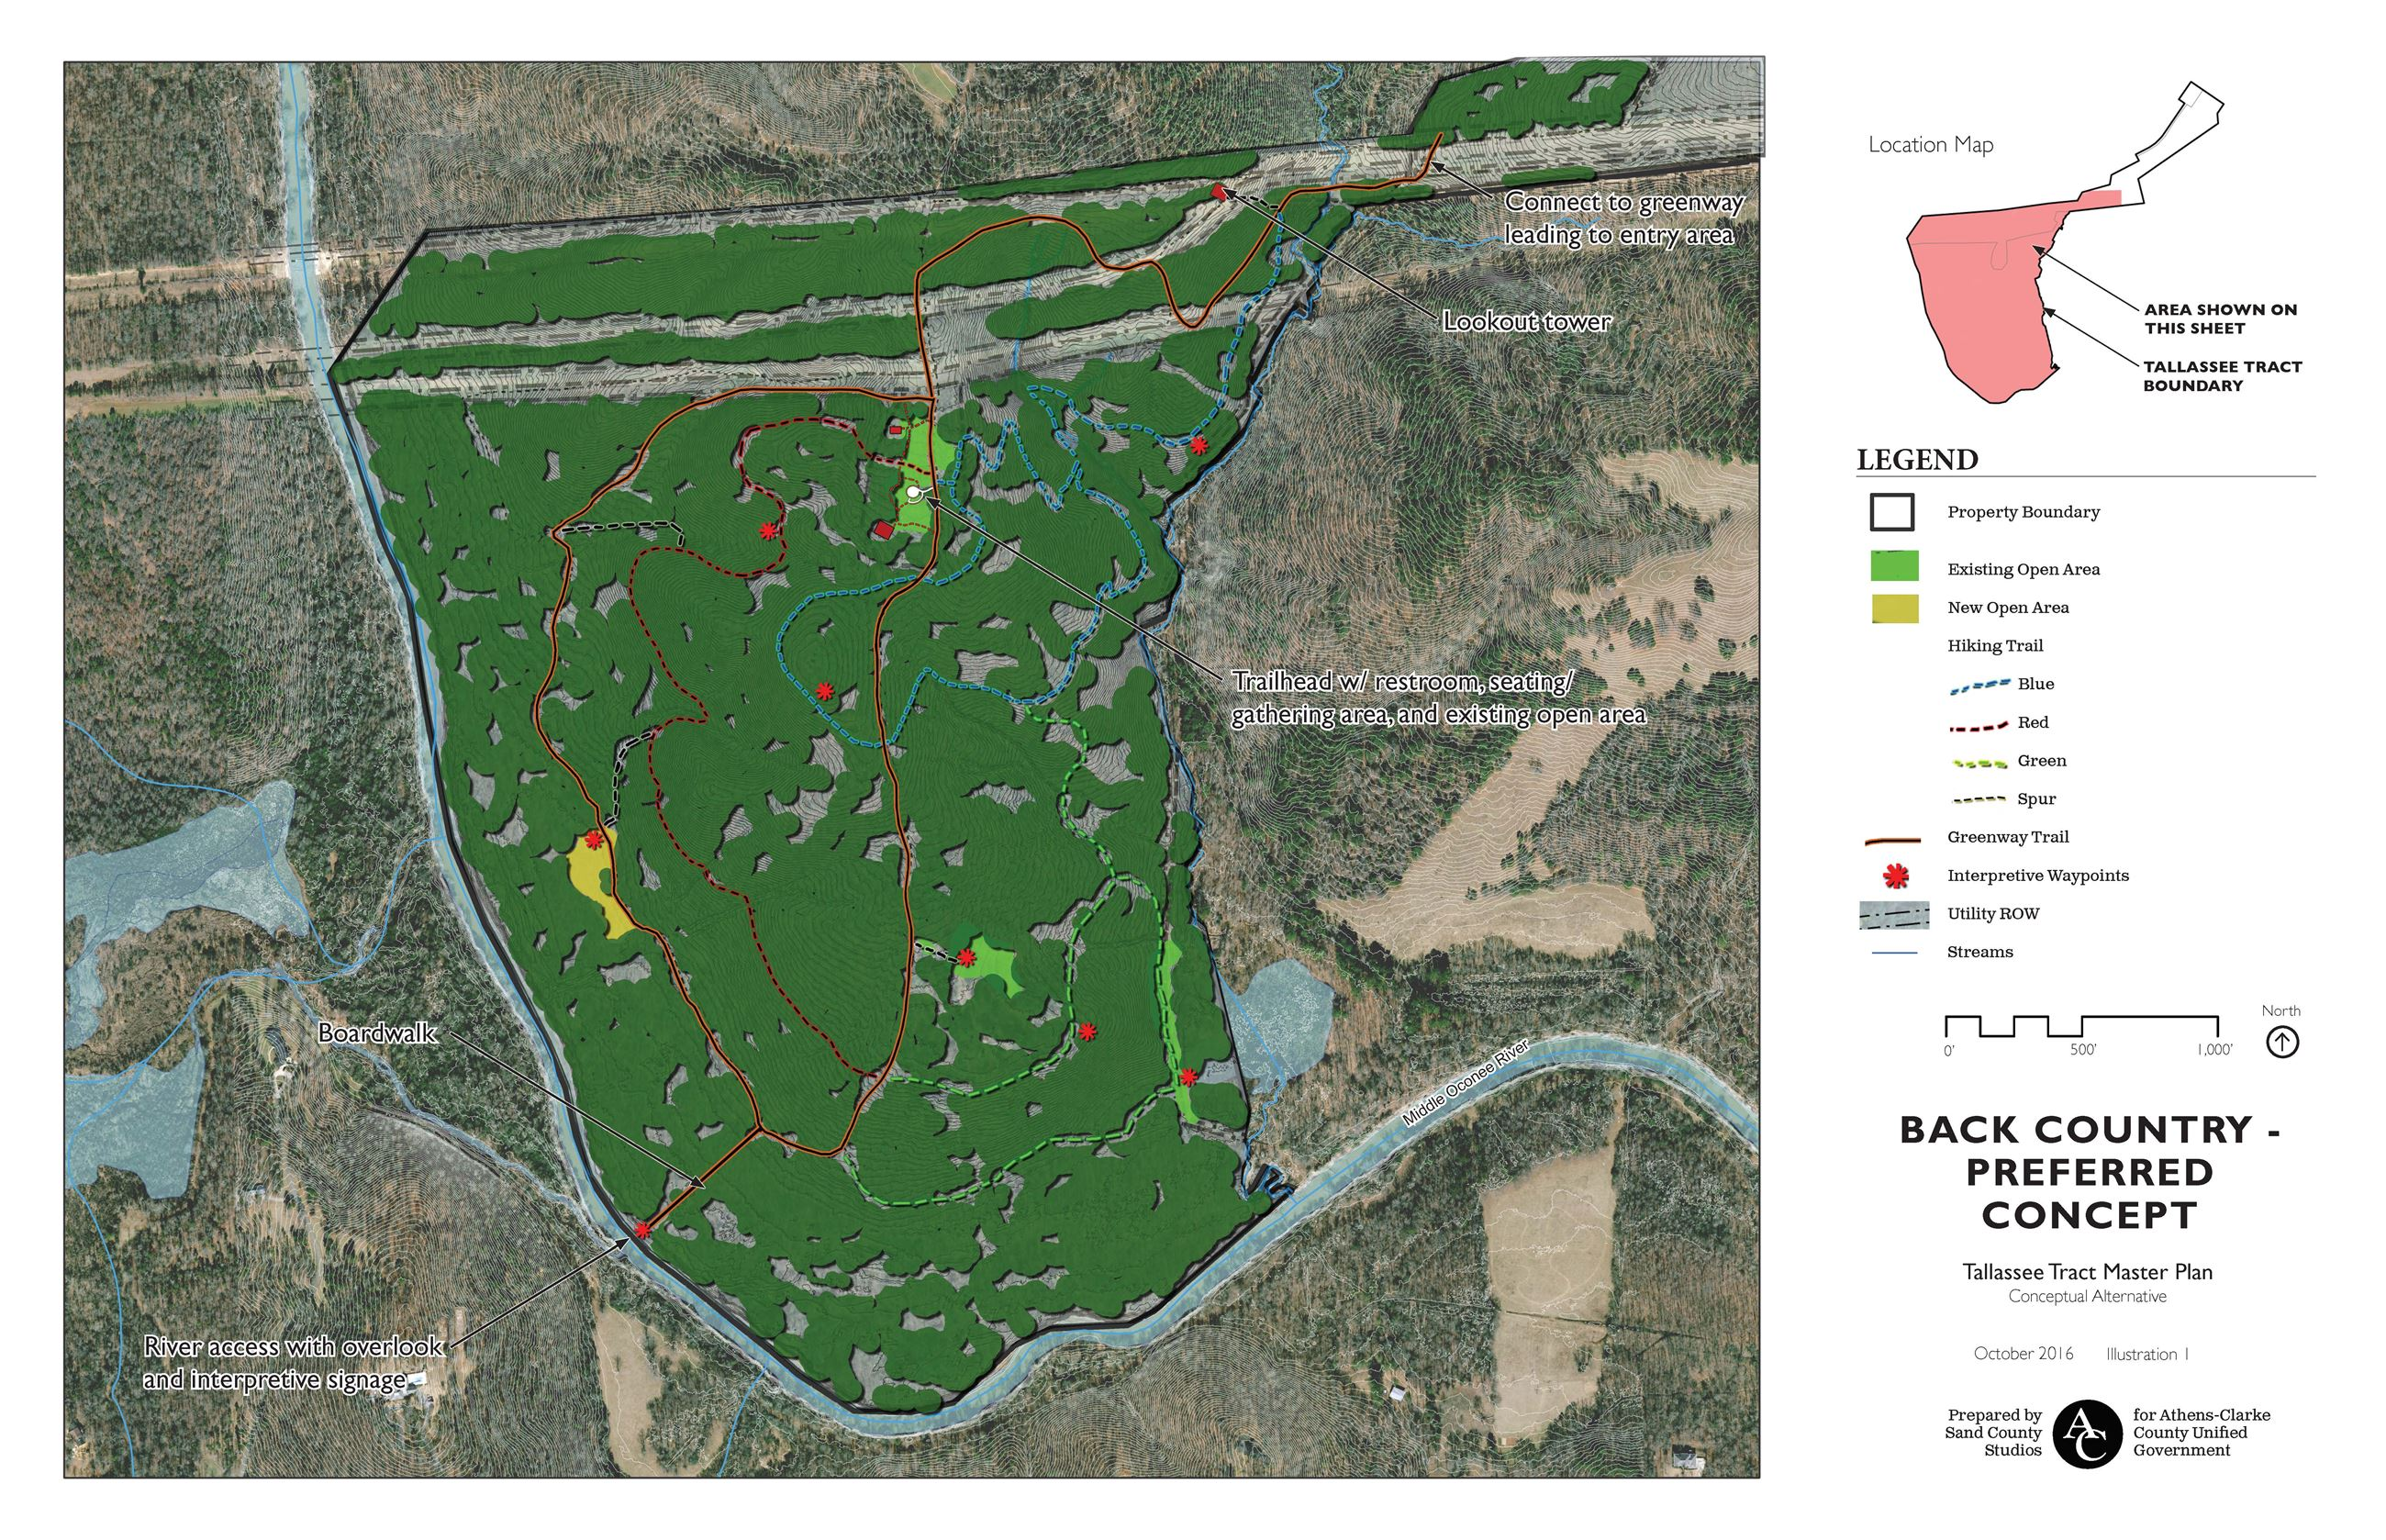 Tallassee Forest Master Plan Back Country Preferred Concept